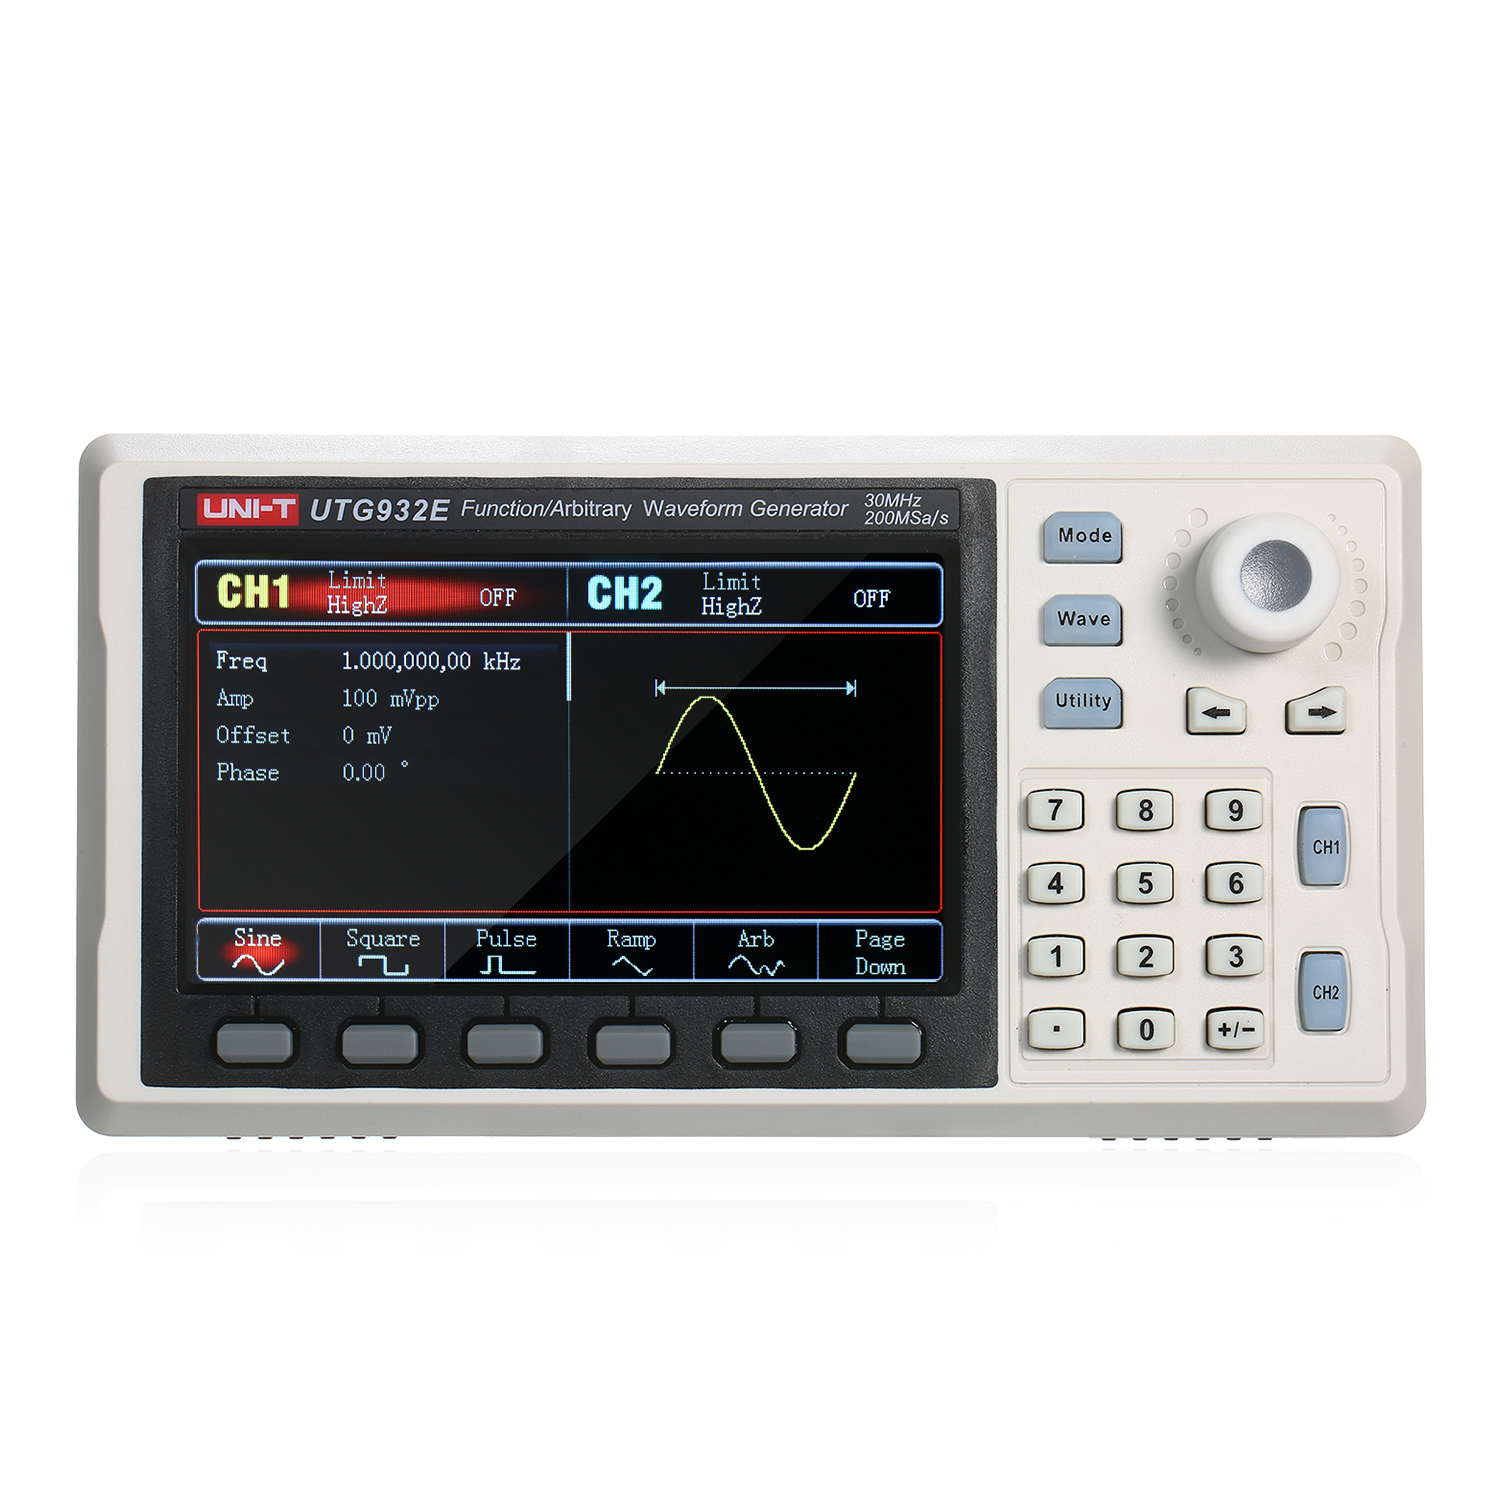 Function/Arbitrary Waveform Generator 30MHz DDS Dual Channel Signal Generator 200MSa/s Frequency Meter Wave Generator